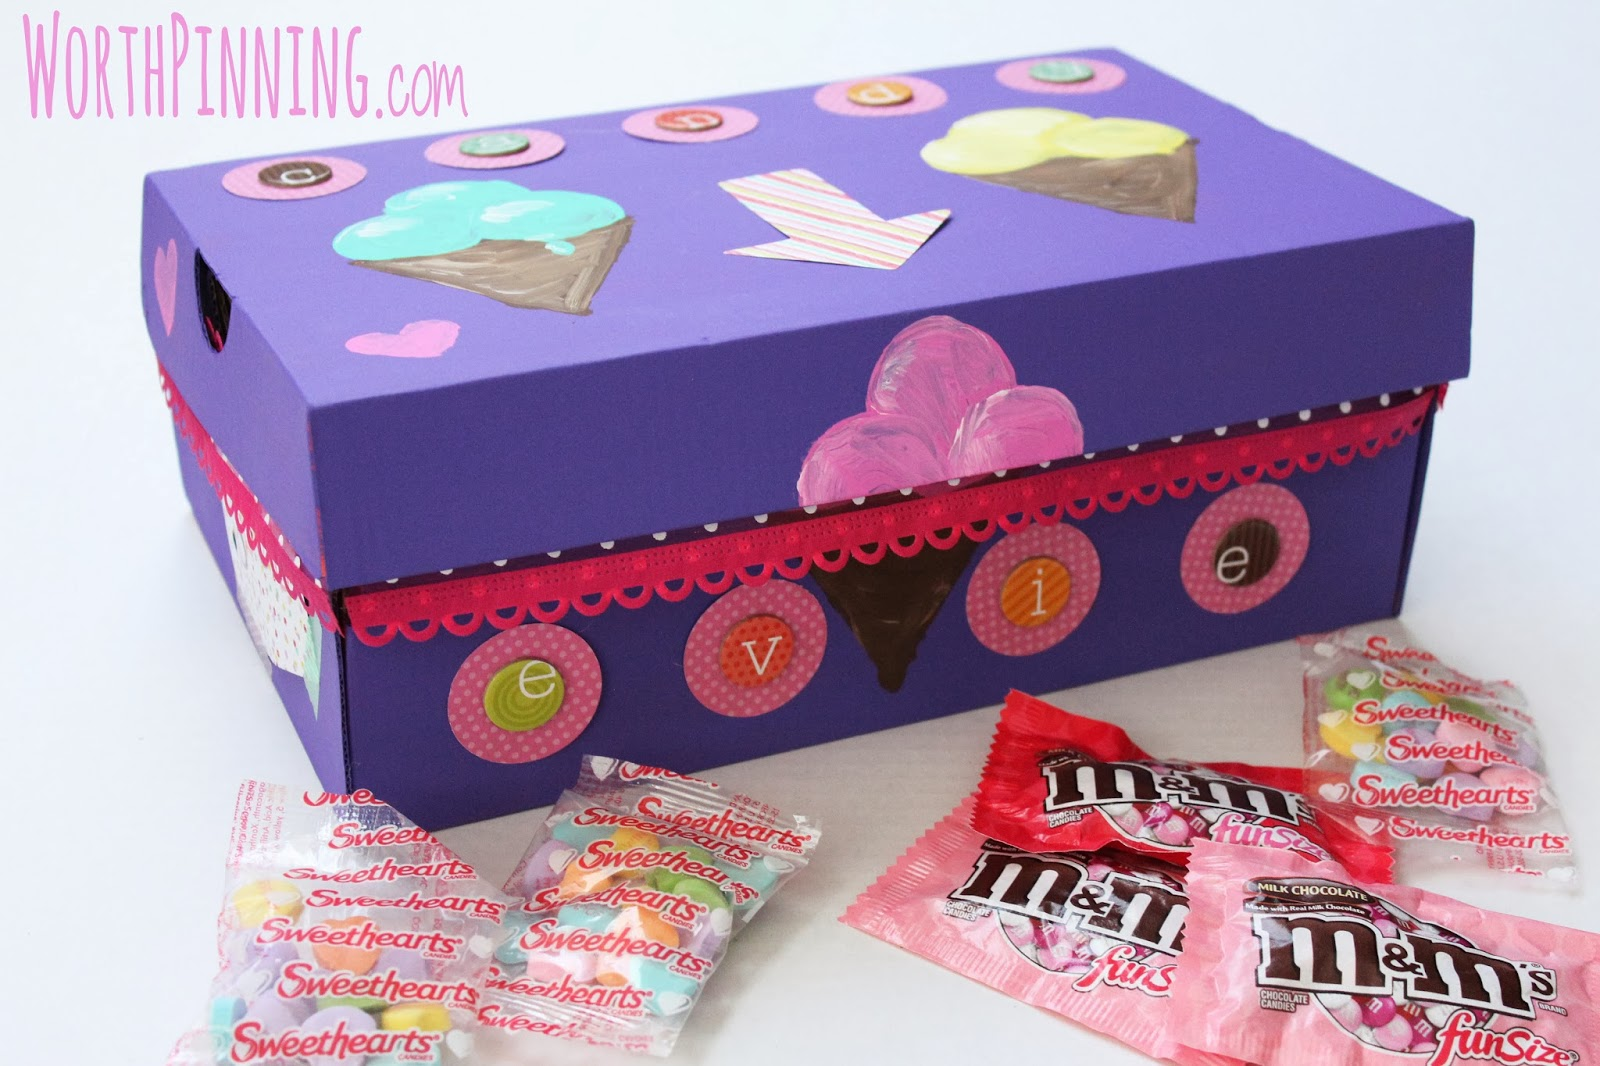 girl and boy valentines day box with apple barrel craft paints - Valentines Day Boxes For Boys